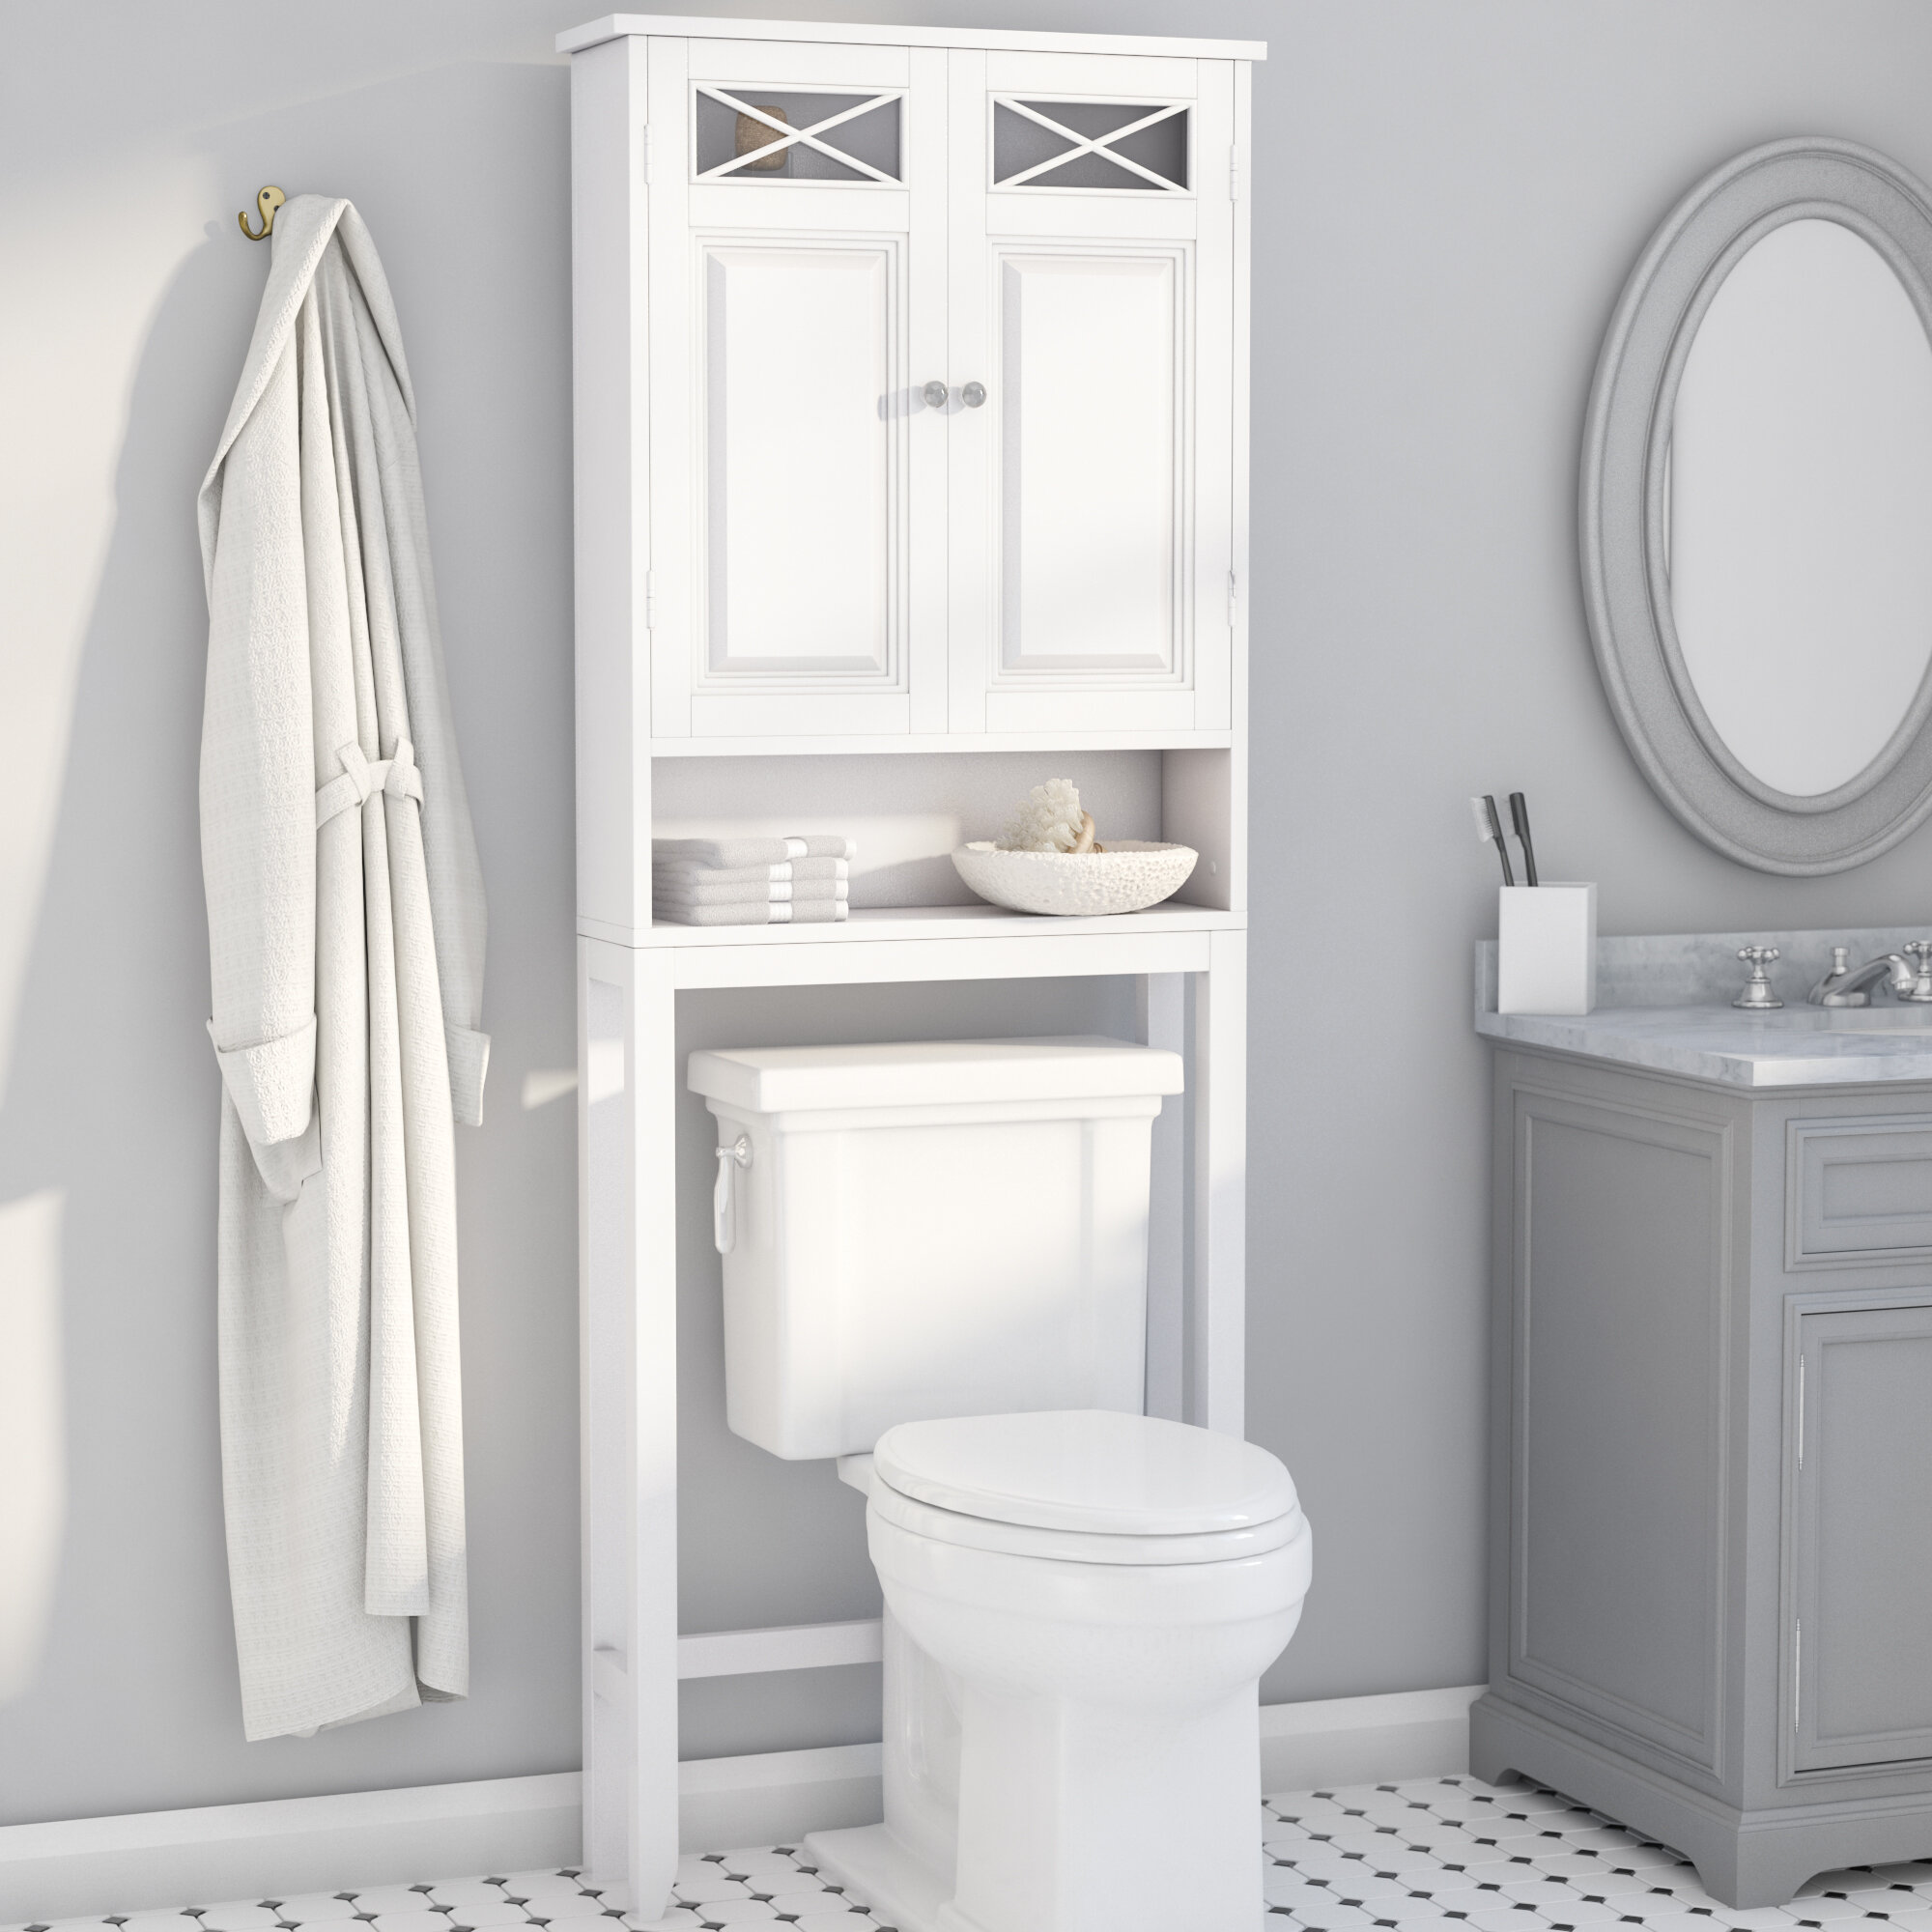 Over The Bathroom Storage.Roberts 25 W X 68 H Over The Toilet Storage